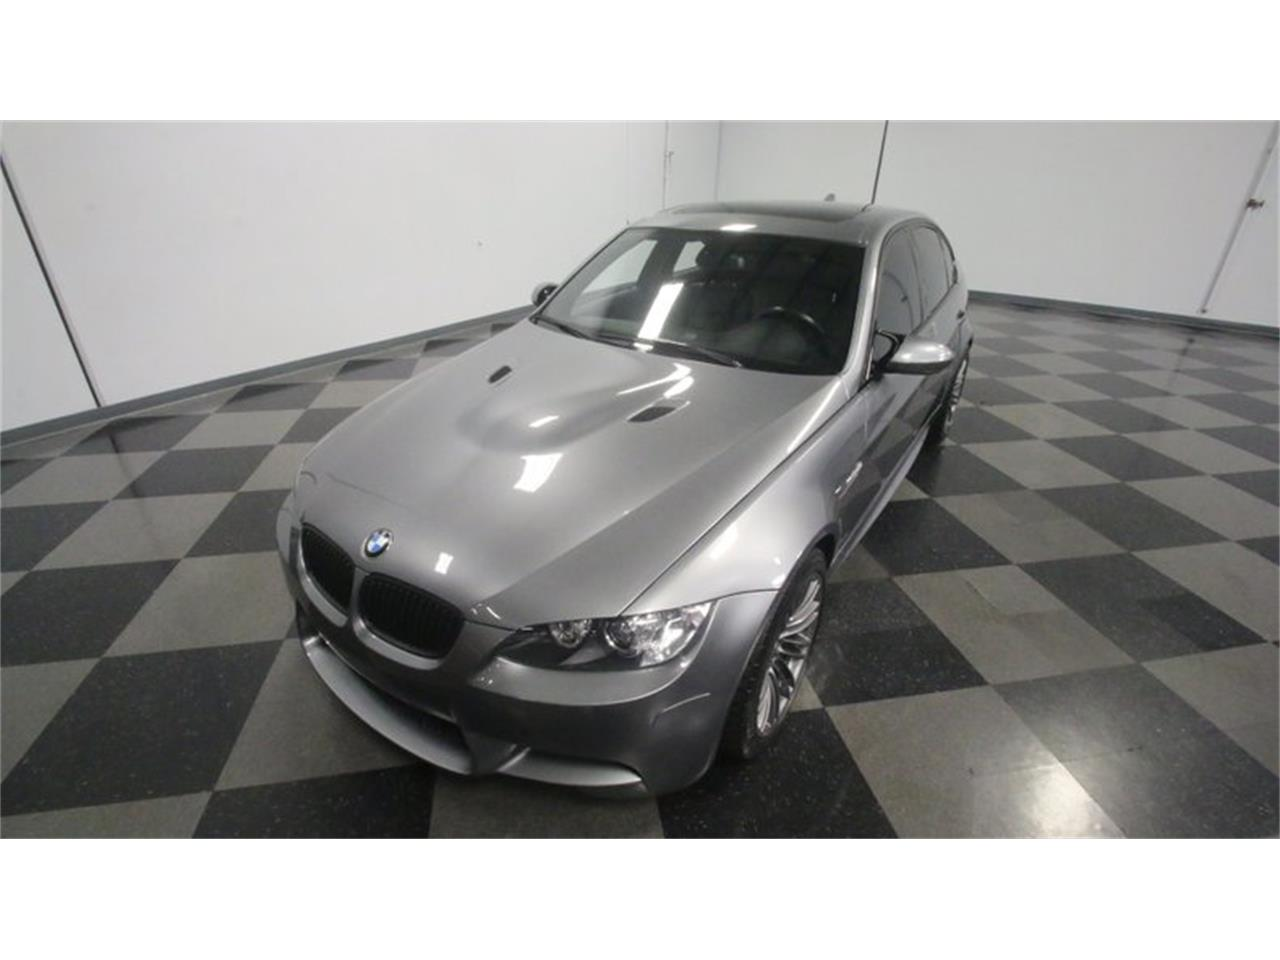 2010 BMW M3 for sale in Lithia Springs, GA – photo 82